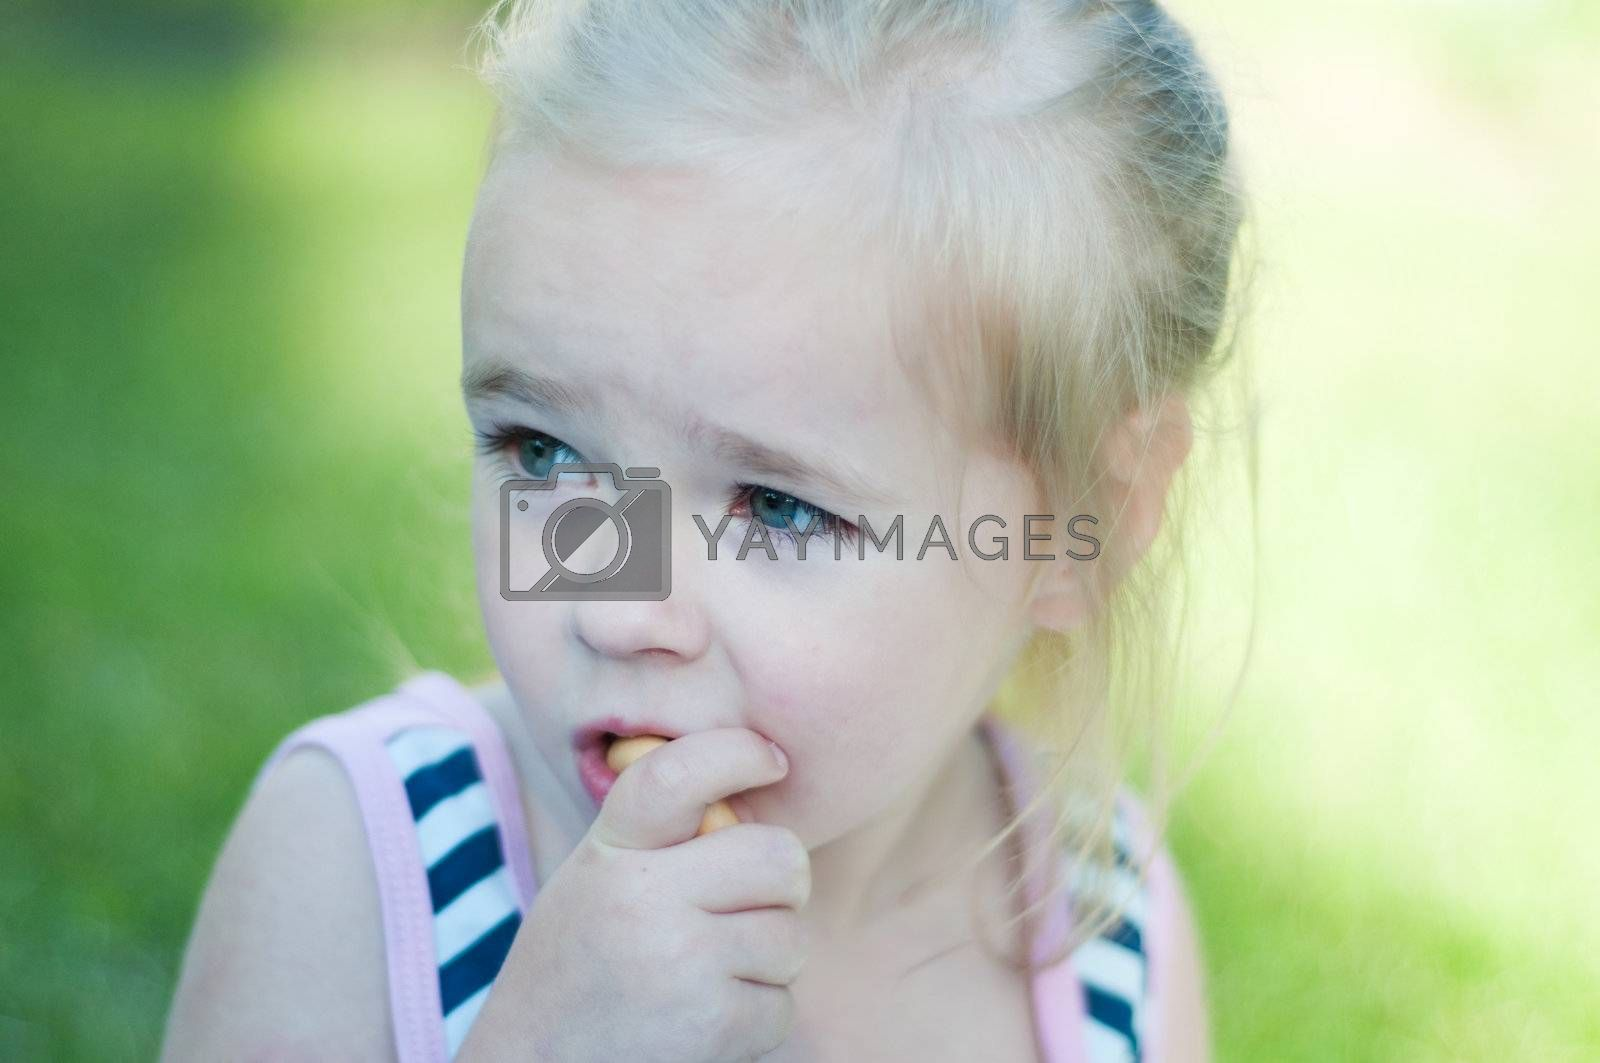 Royalty free image of Little girl by anytka